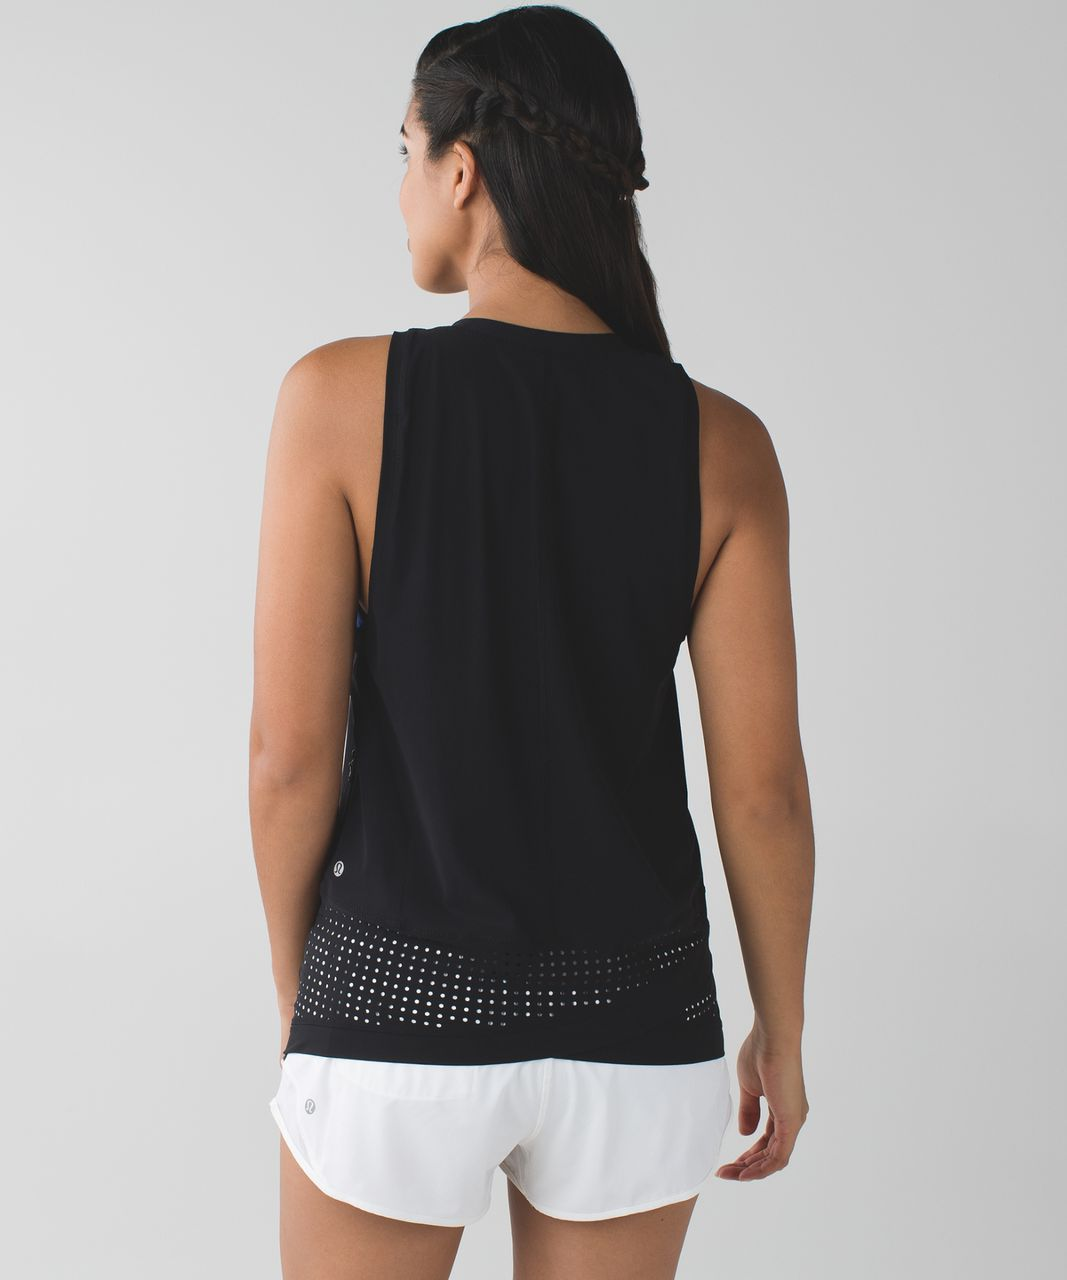 Lululemon Vent It Tank - Black